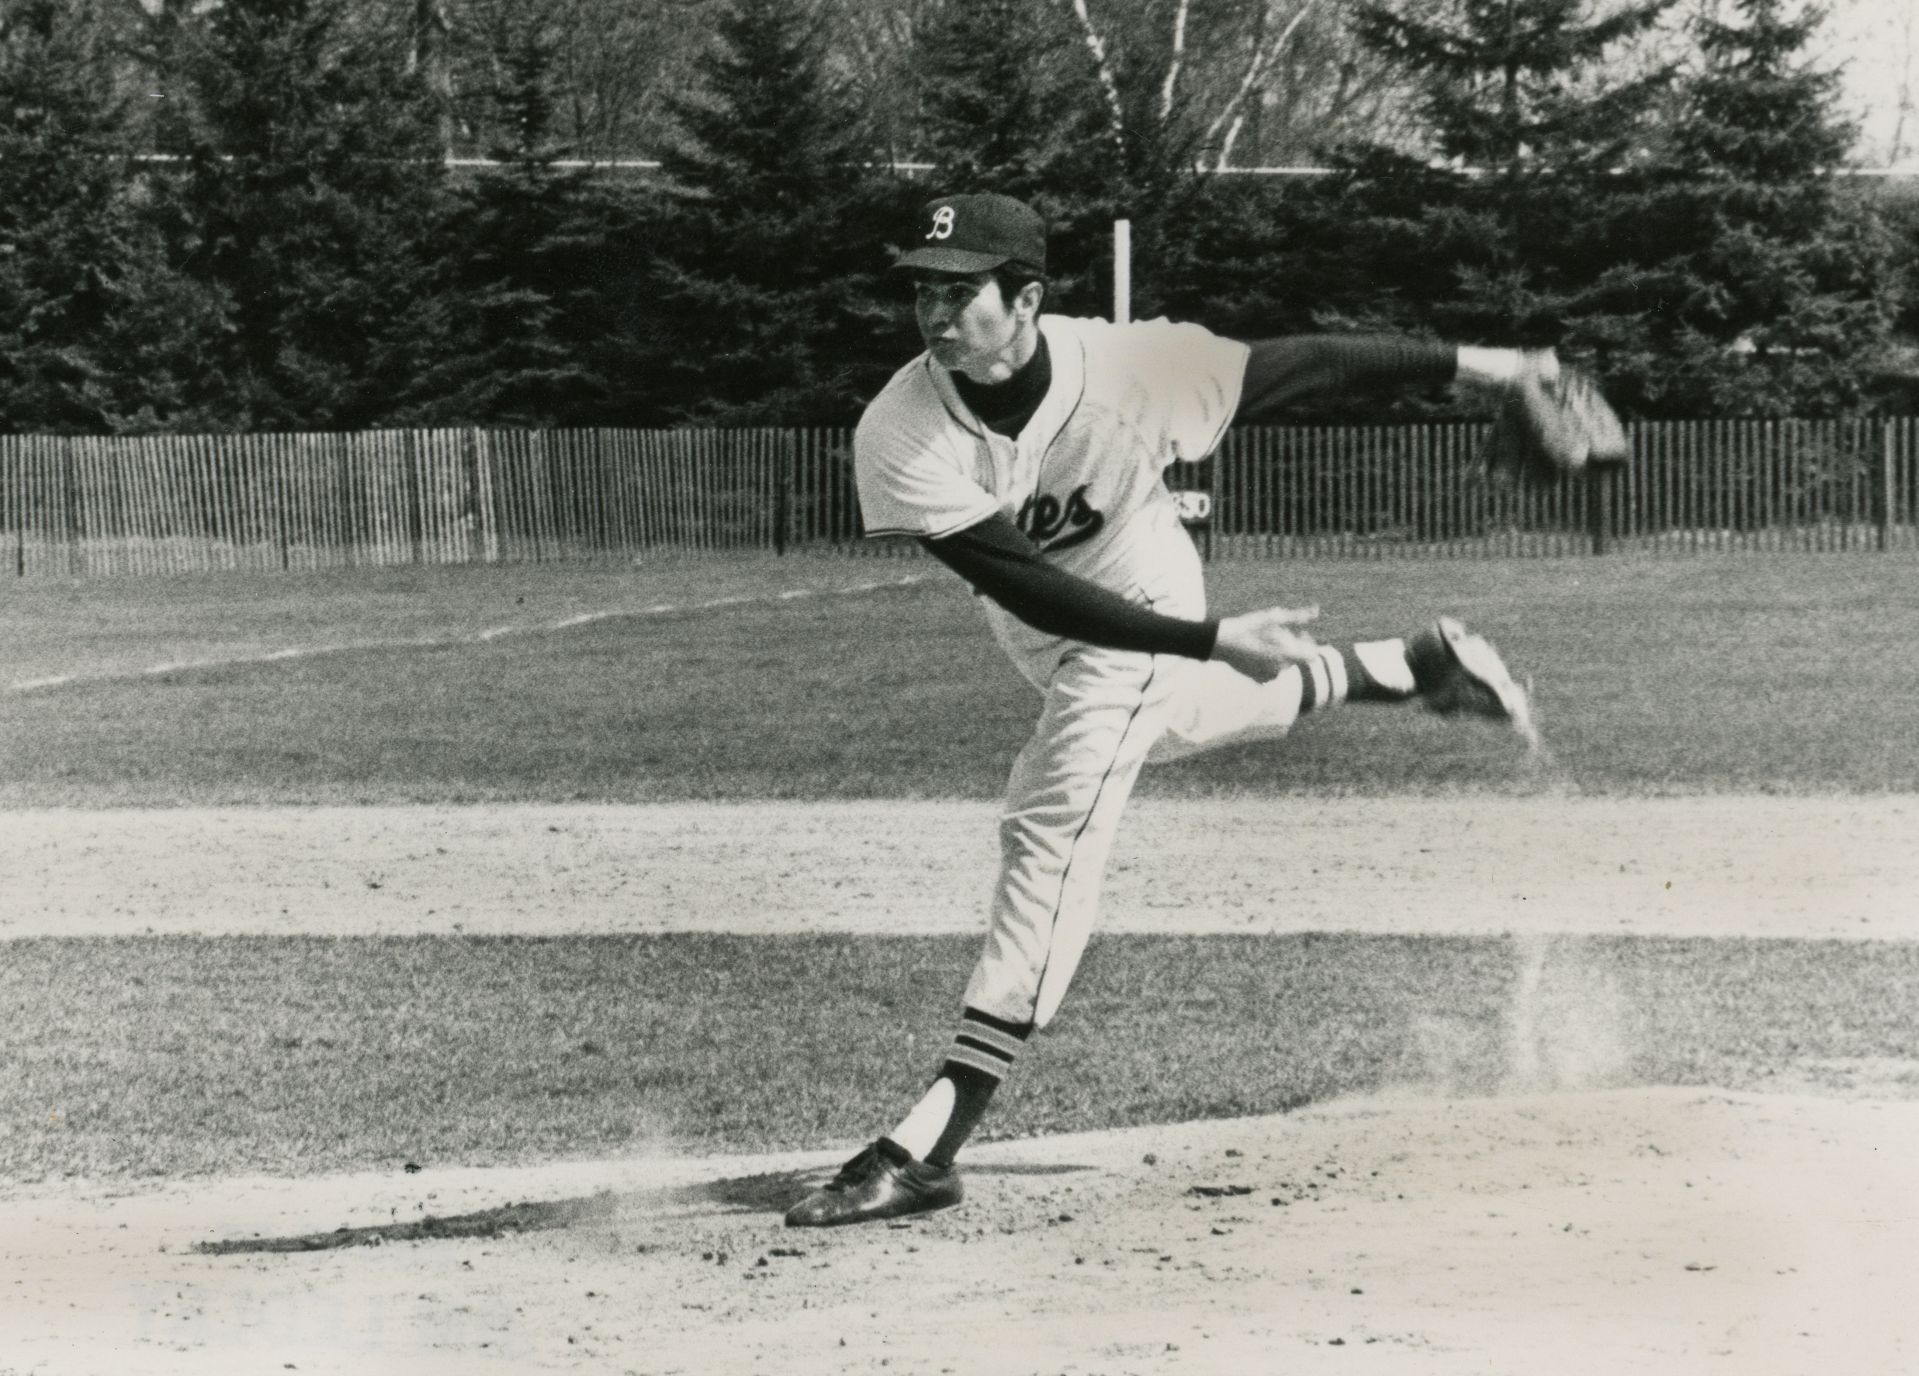 David Nash '68 pitching for Bates. (Photograph by Jim Ledley '69)